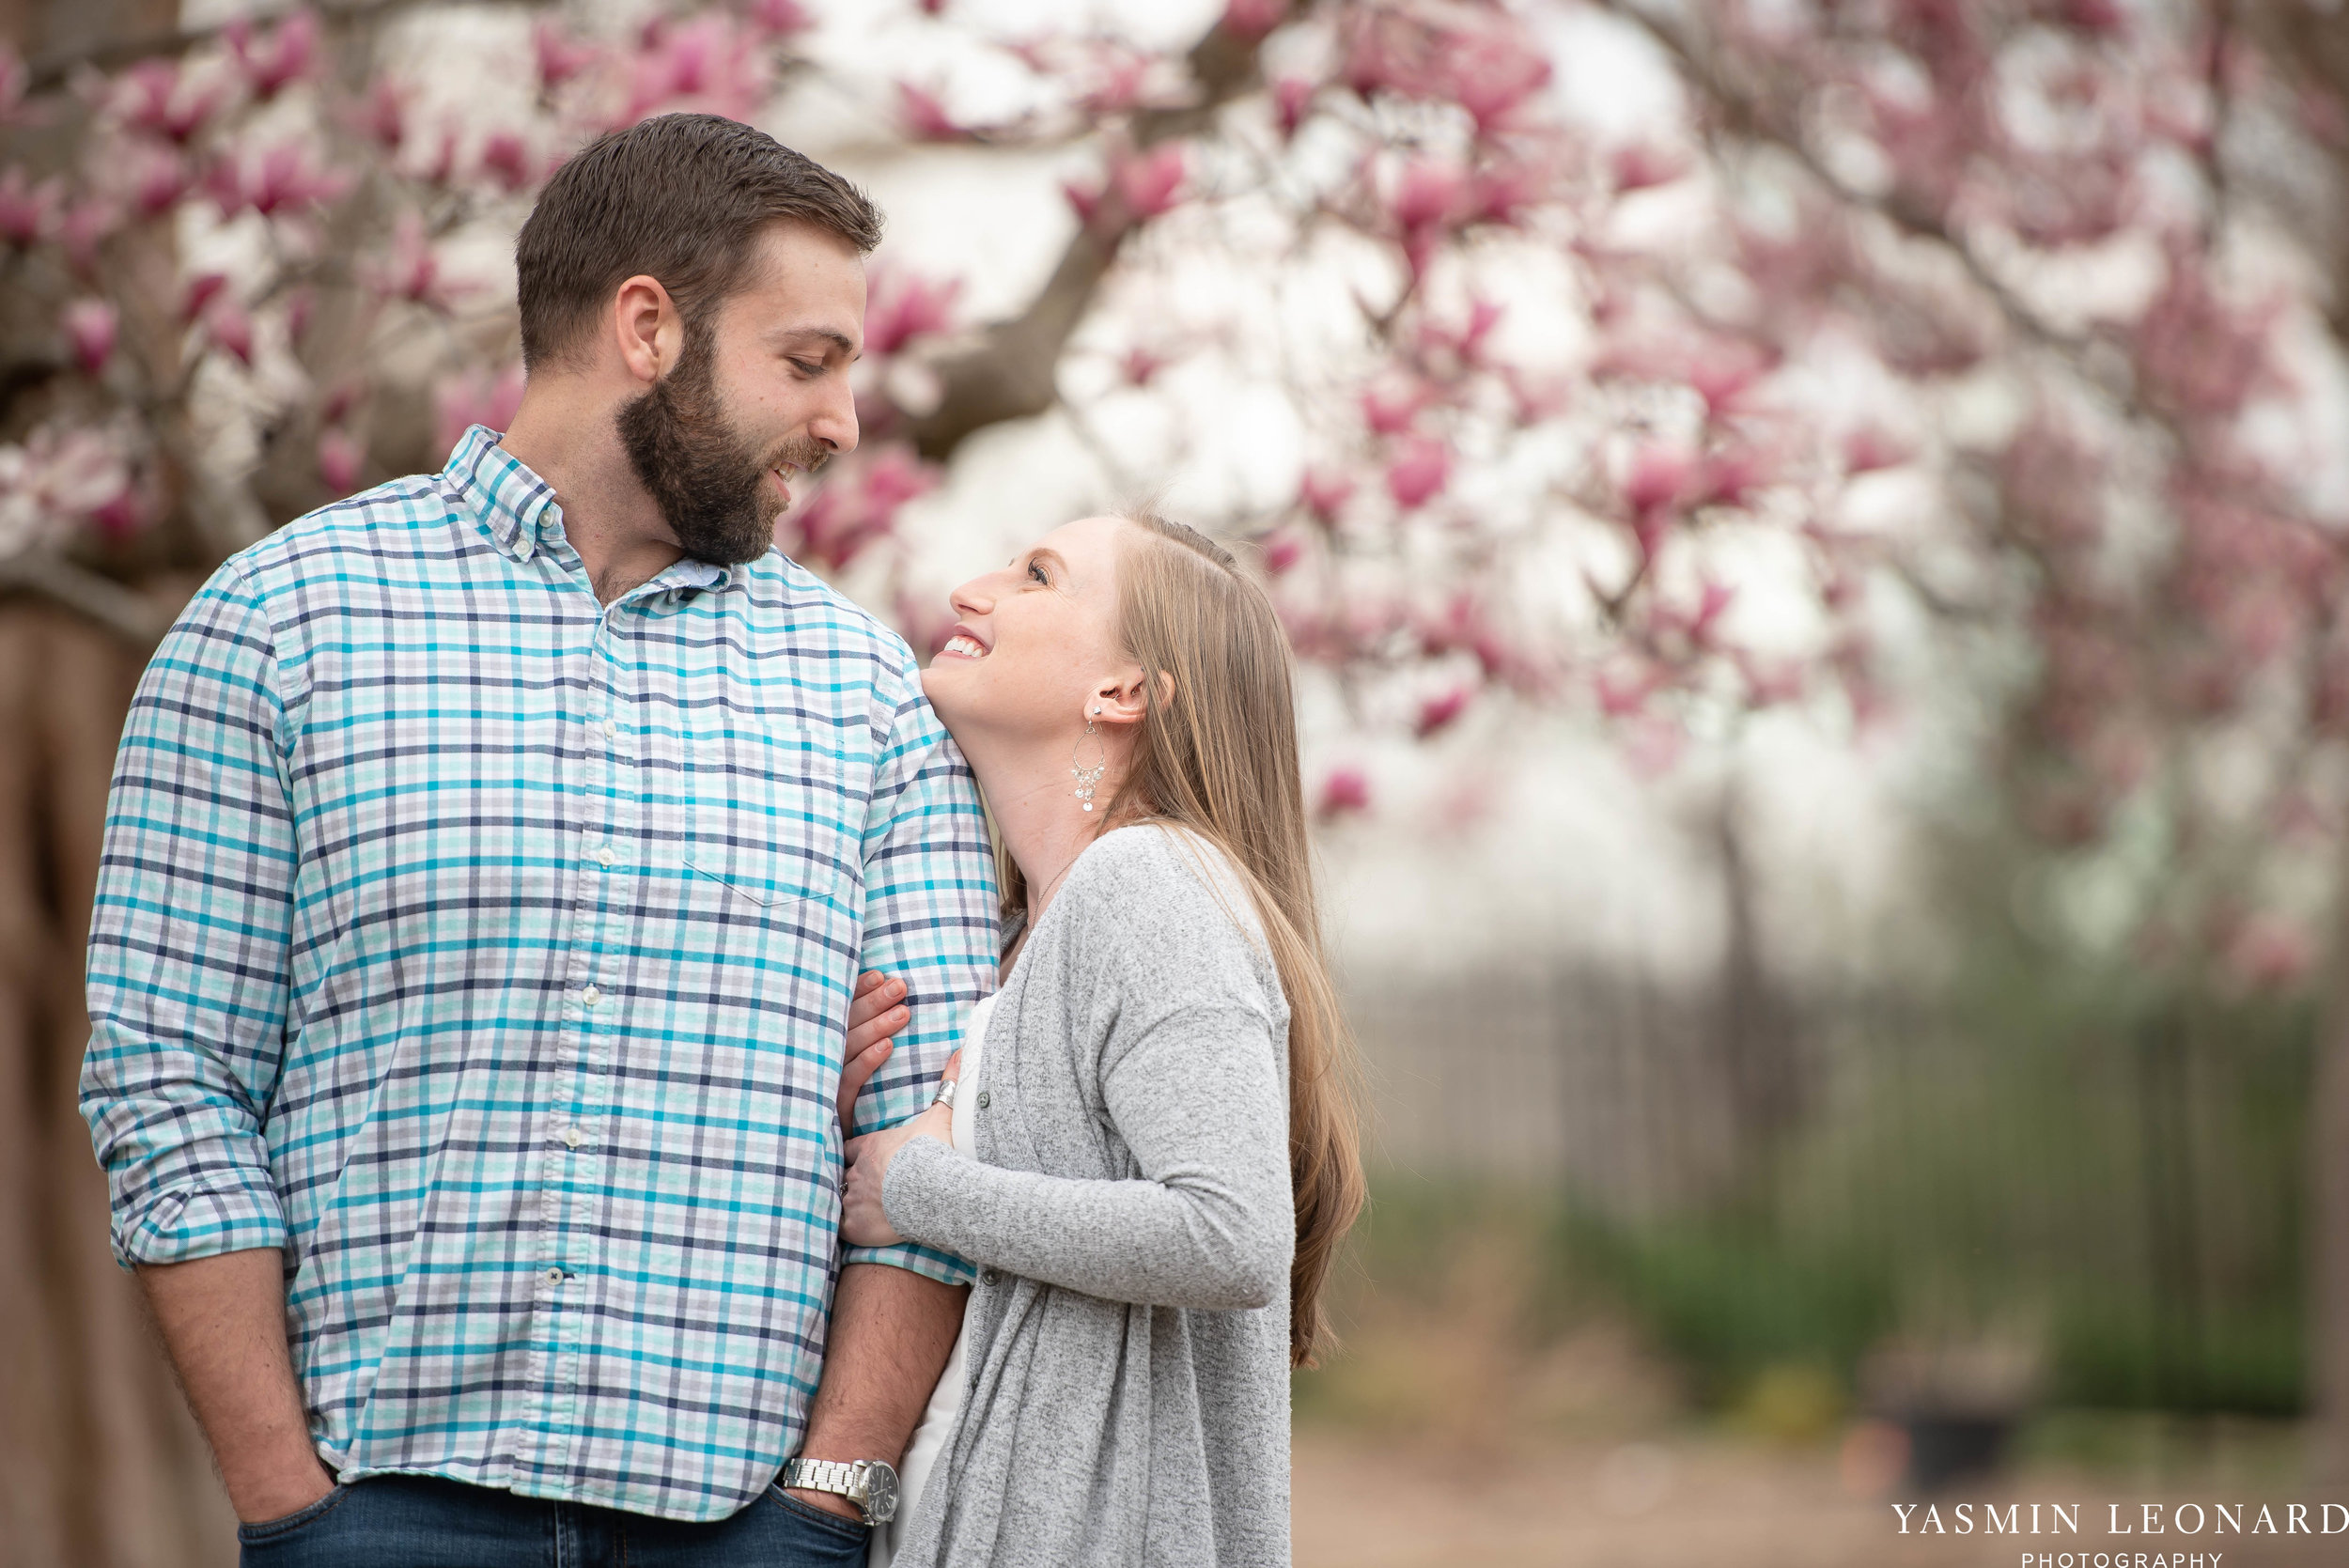 Engagement Session at Tanglewood - Spring Engagement Session - Engagement Session Ideas - Engagement Pictures - What to Wear for Engagement Pictures - Yasmin Leonard Photography-2.jpg